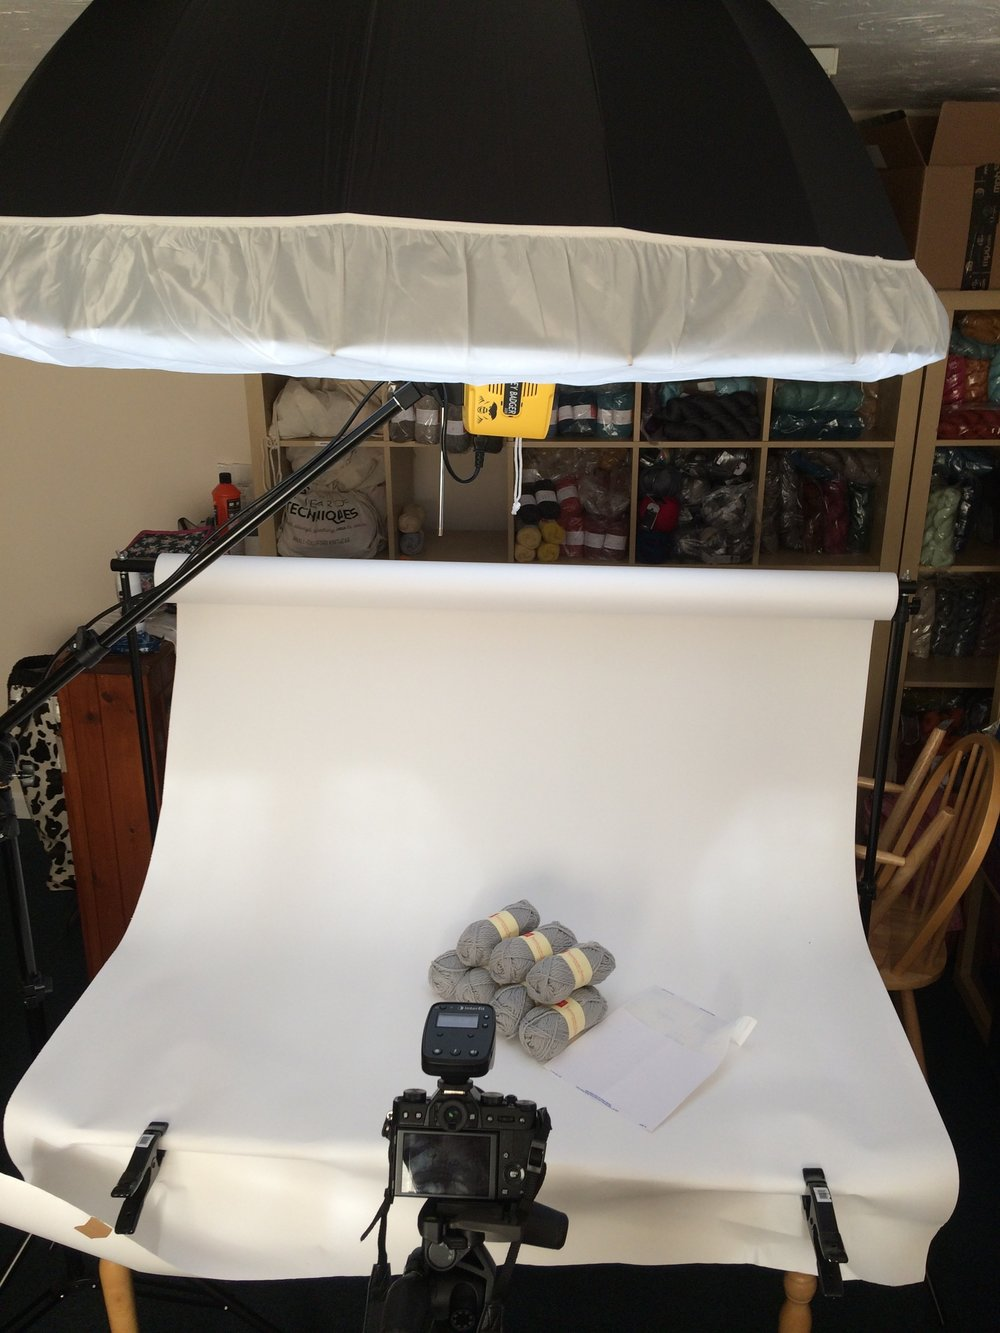 Light, camera, high-tech scrap of paper to mark the position of the yarn.